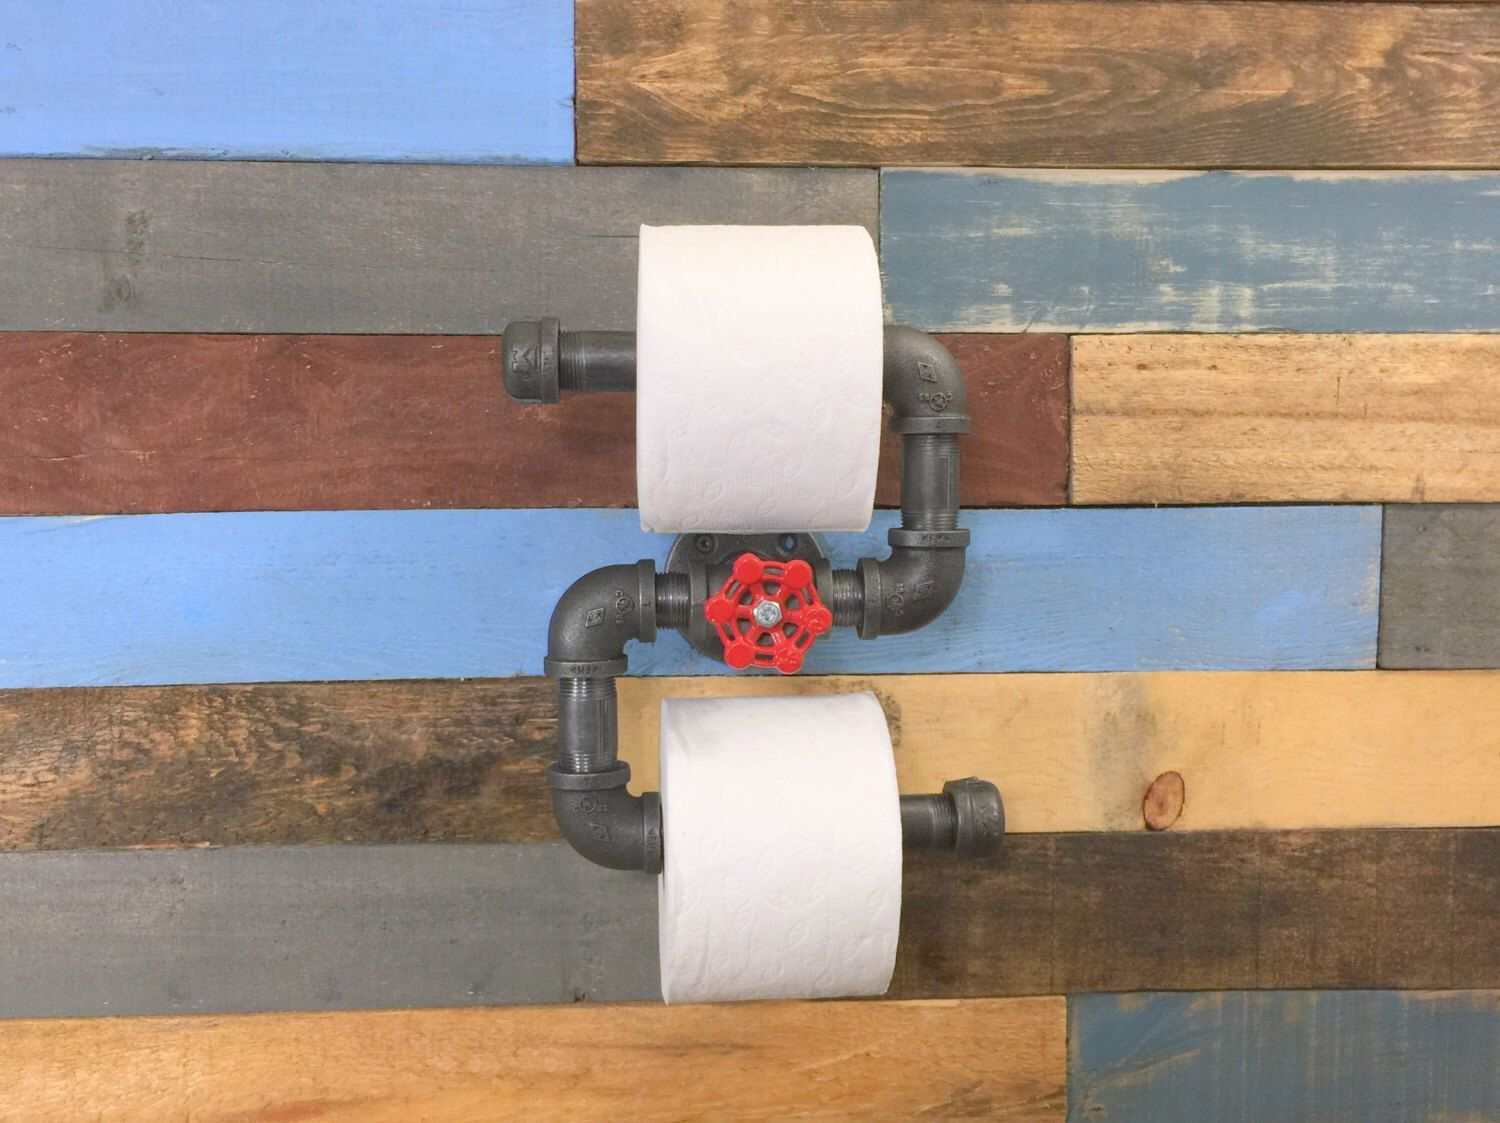 Man Cave Toilet : Industrial toilet paper holder home decor man cave